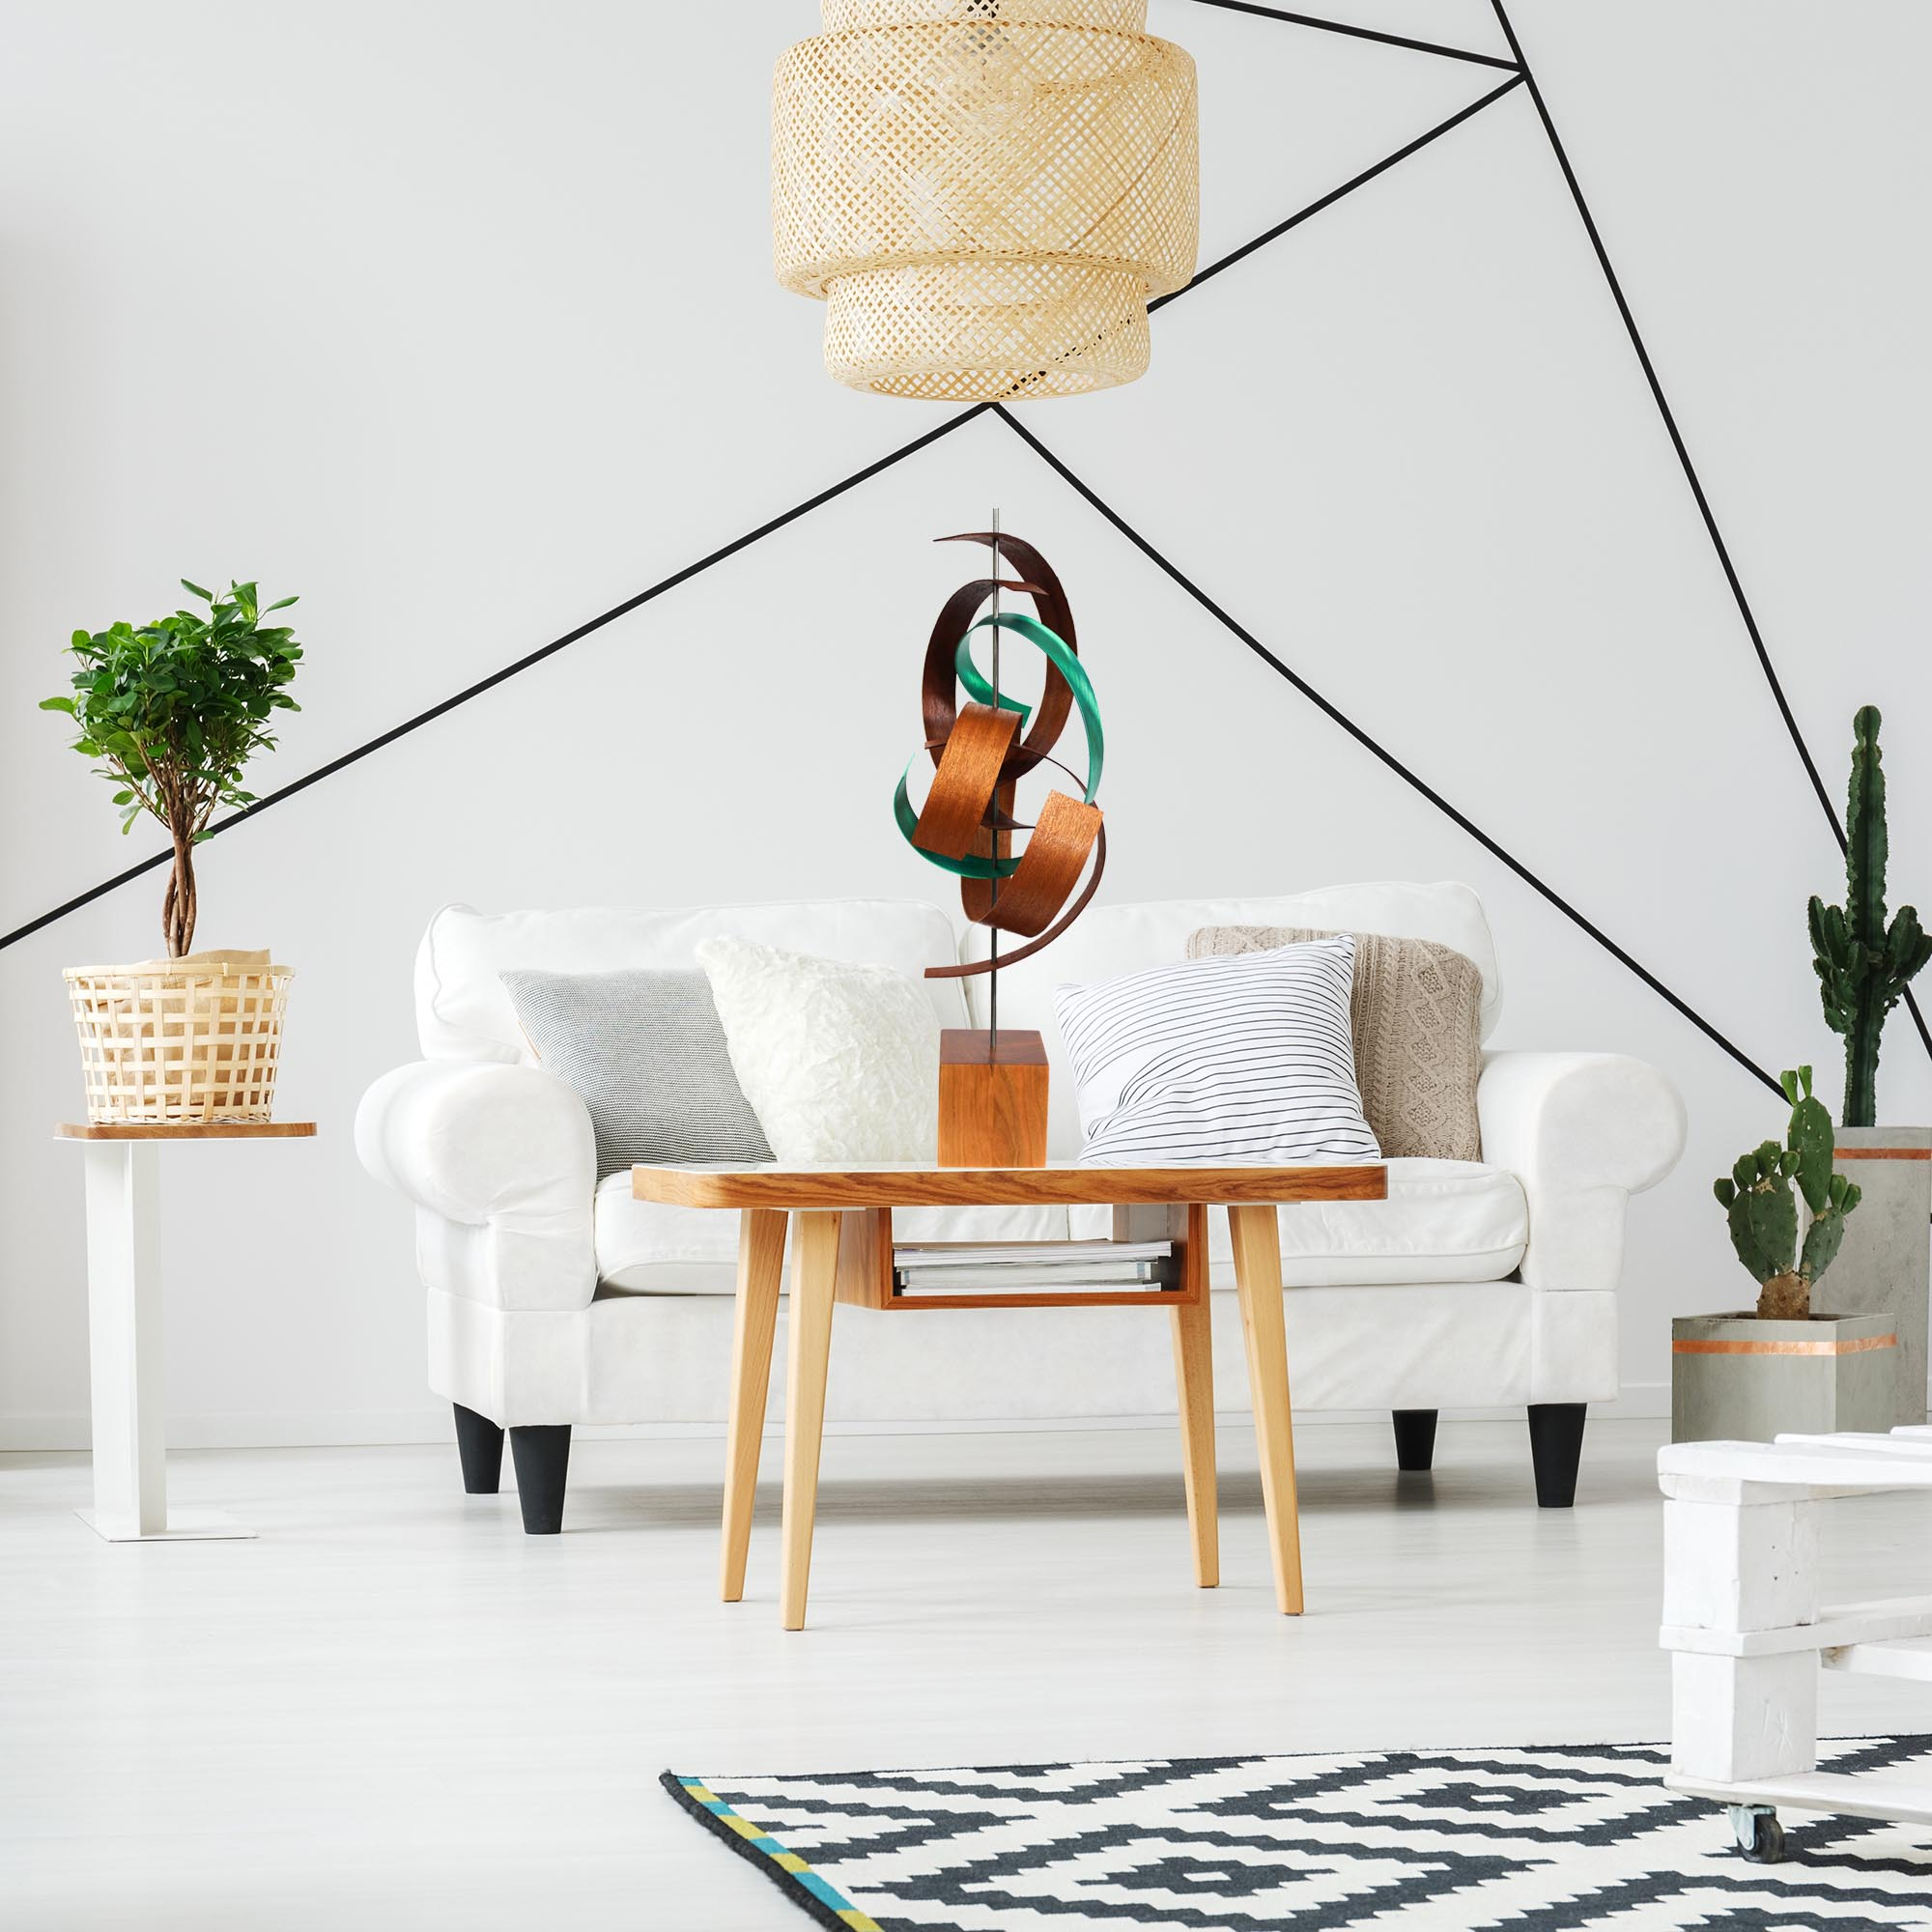 Intertwine by Jackson Wright - Modern Wood Sculpture, Mid-Century Home Decor - Lifestyle View